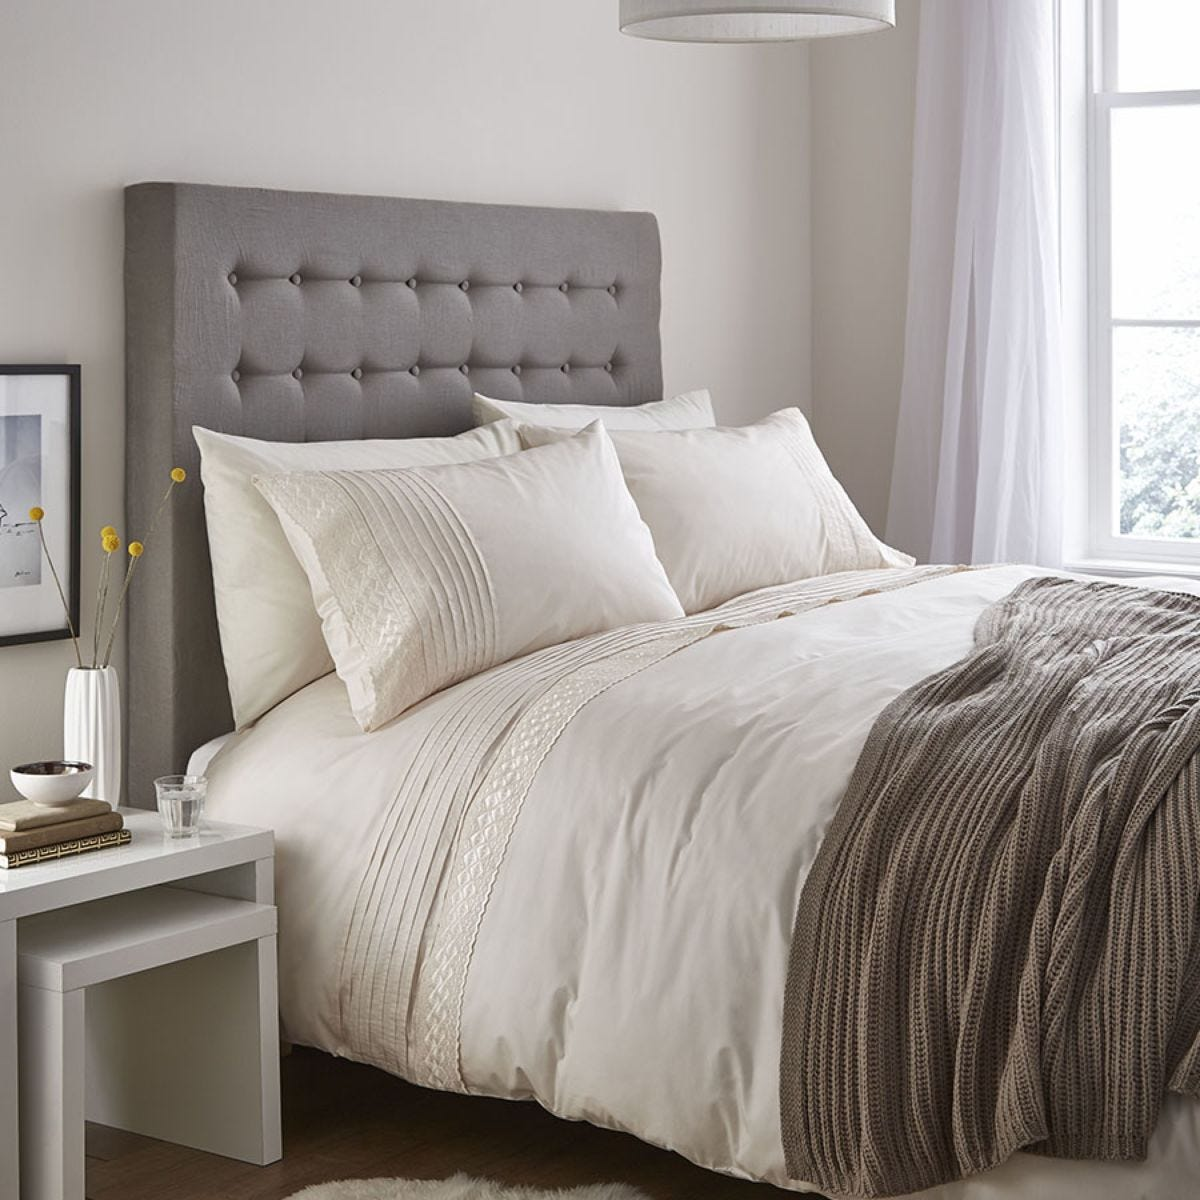 Catherine Lansfield Classic Lace Bands Bed Set - Cream